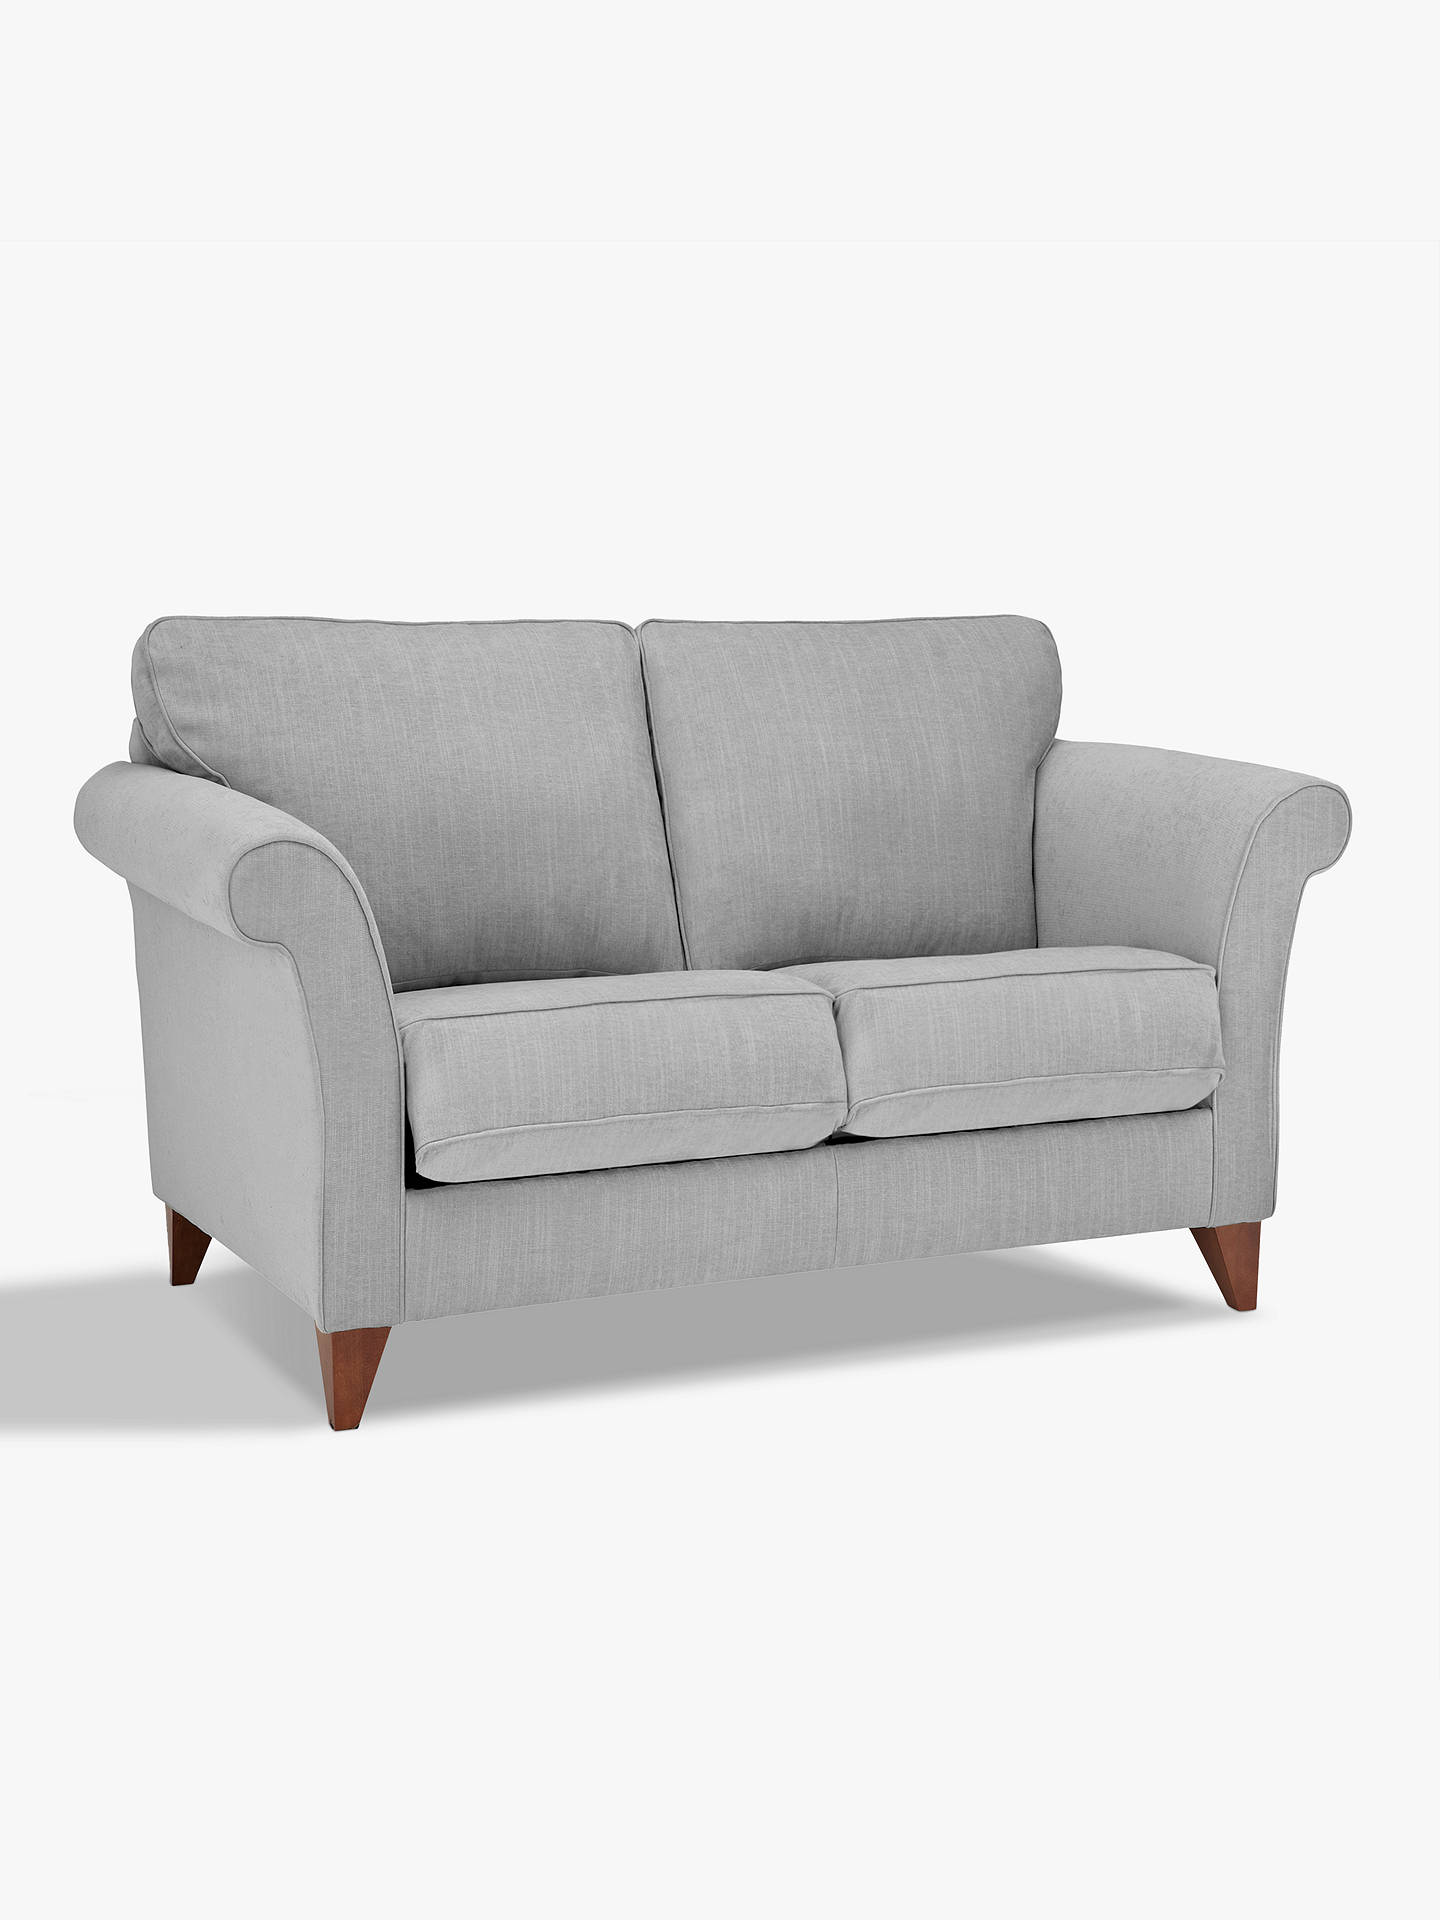 John Lewis Partners Charlotte Small 2 Seater Sofa